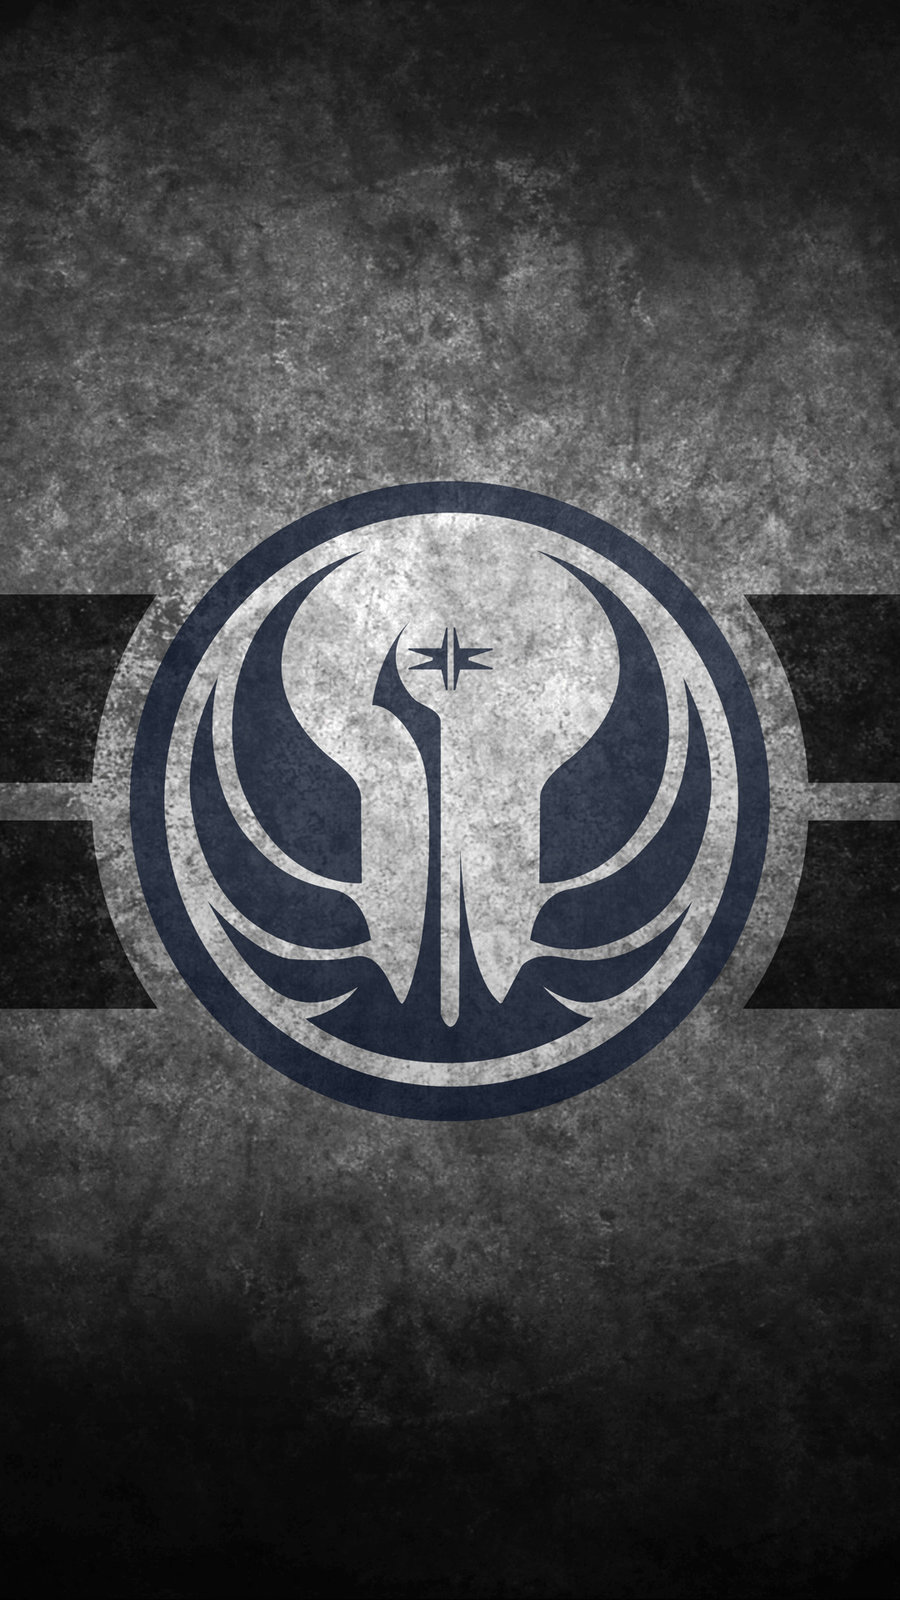 Star Wars Old Republic Symbol Cellphone Wallpaper by swmand4 on 900x1600